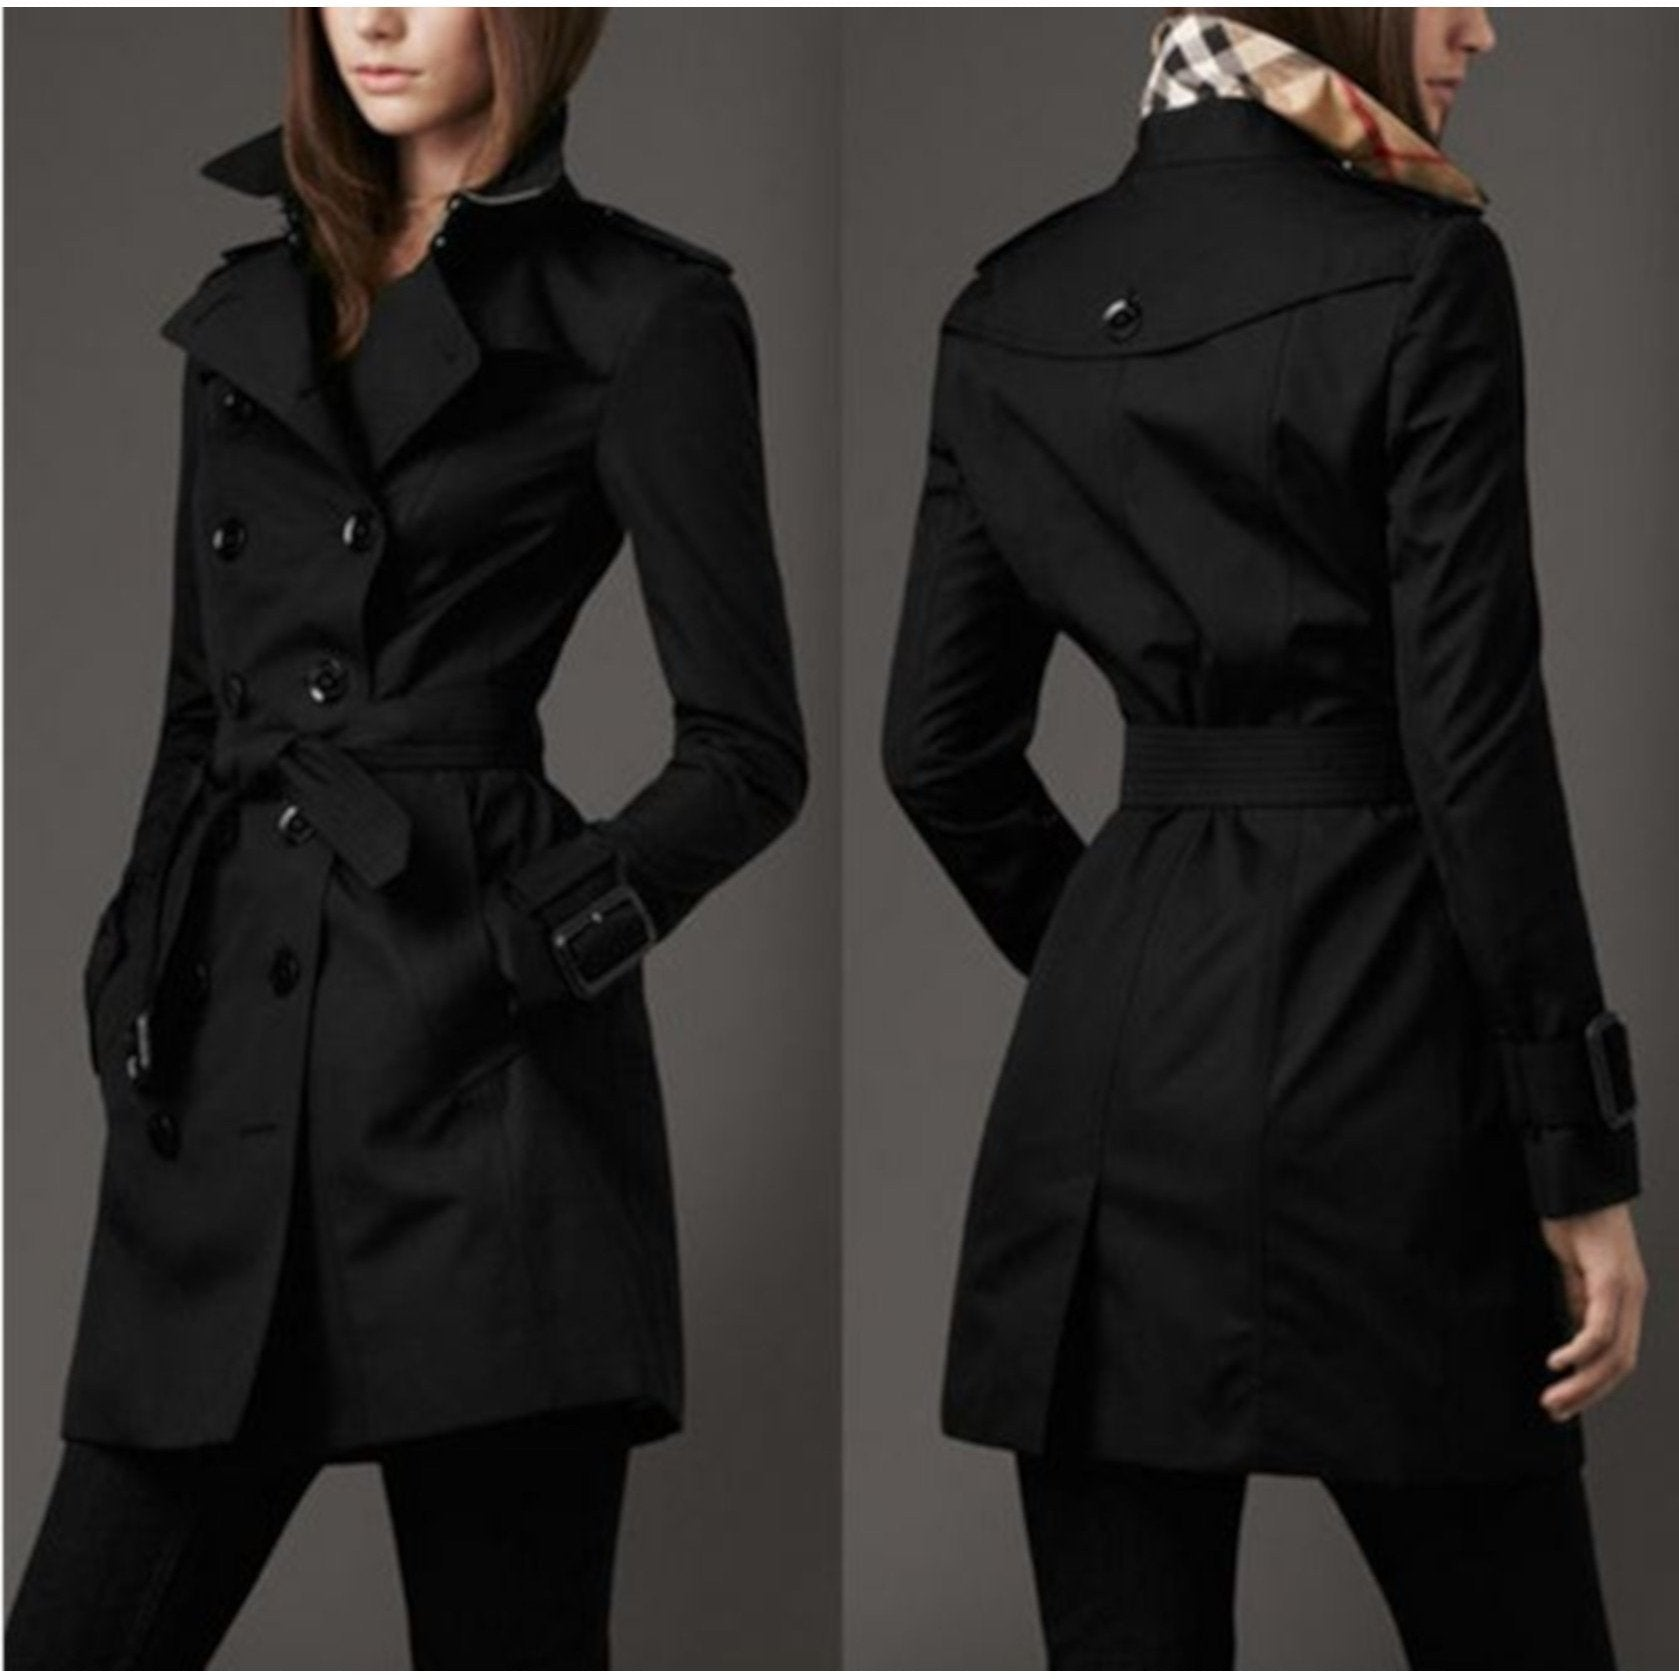 2019 professional Super discount enjoy clearance price Womens Black Double Breasted Trench Coat Lightweight Rain Jacket